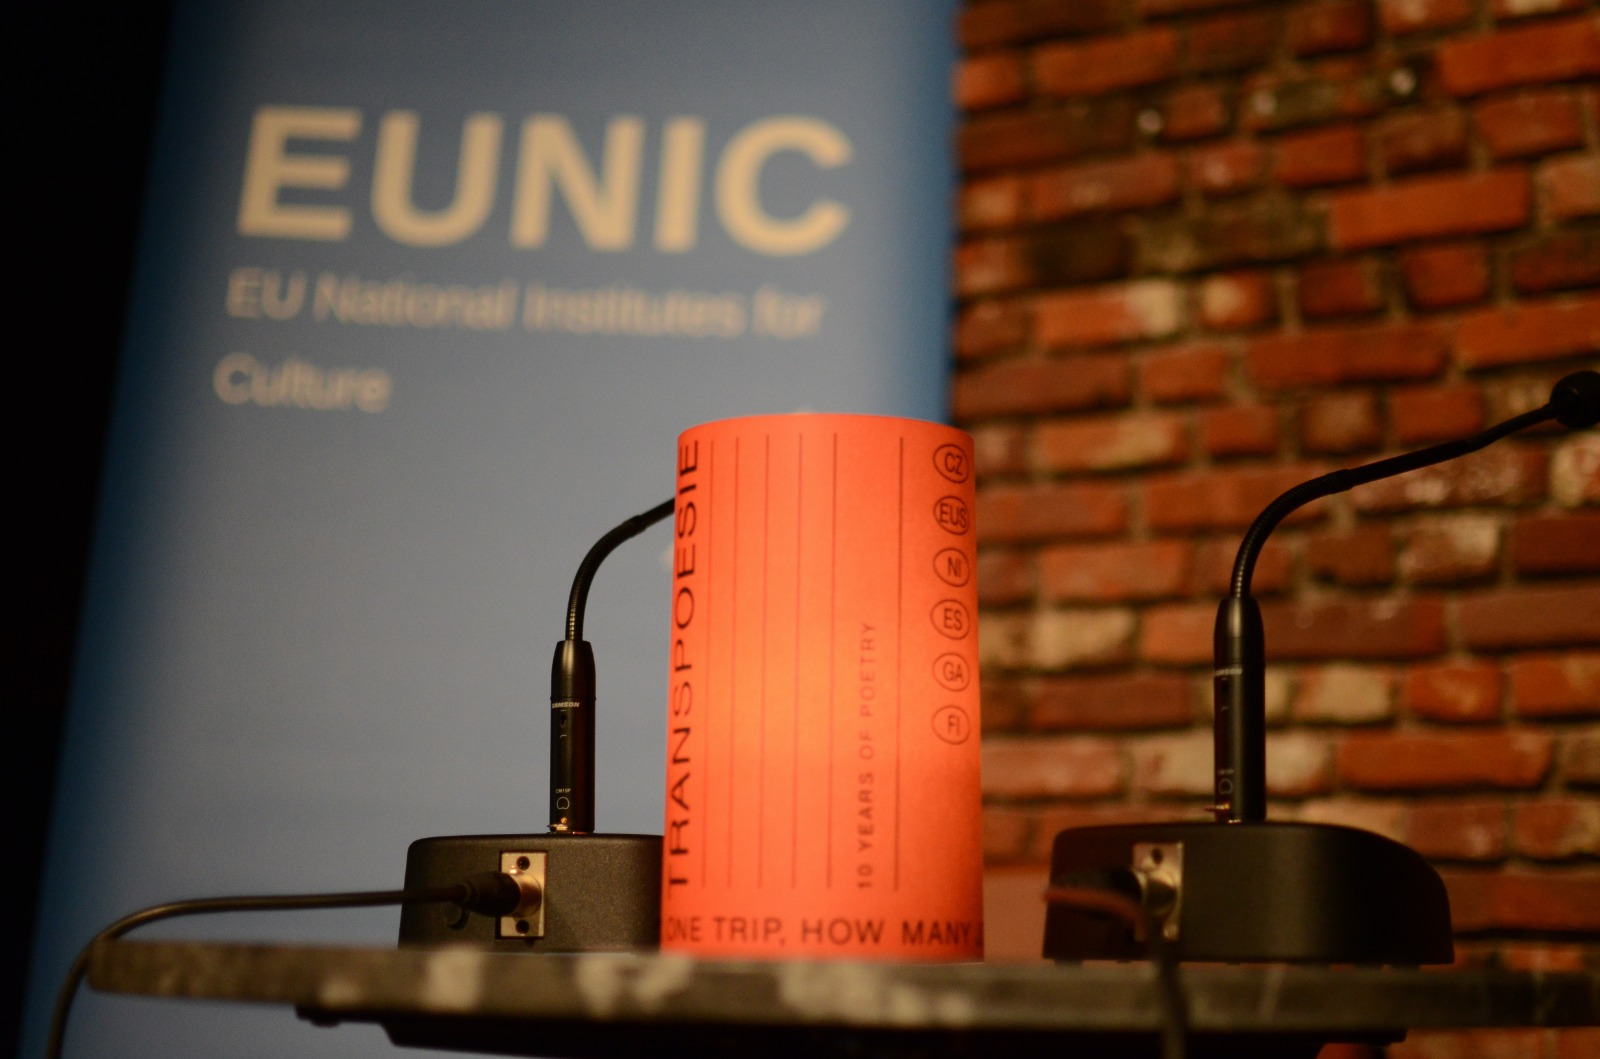 A close-up image of a speaker desk and microphones at a Transpoesie event, with a blue EUNIC banner in the backgournd